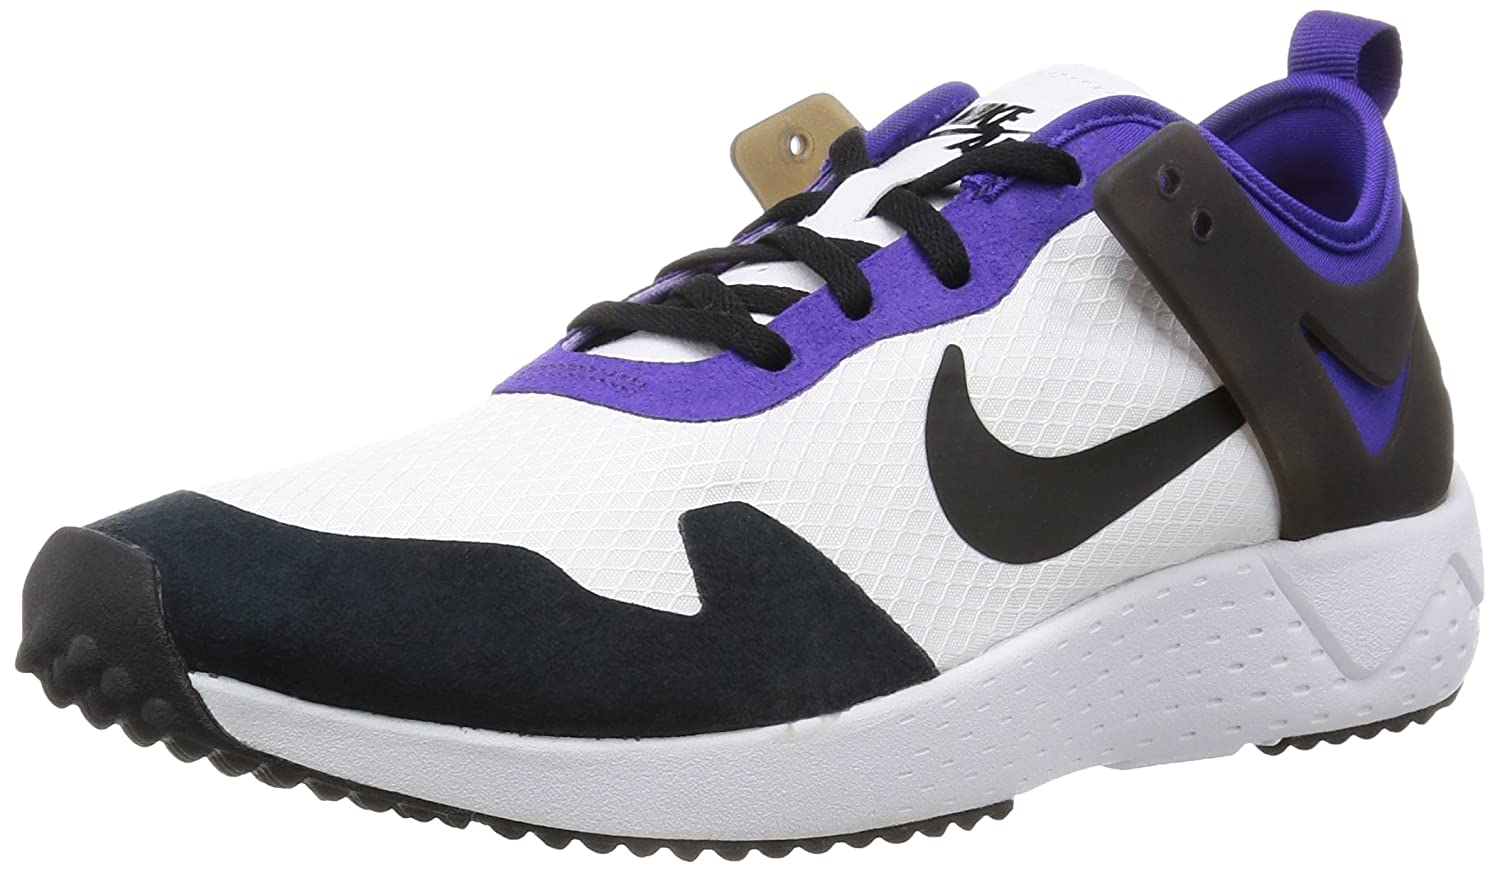 NIKE Zoom Lite QS Men's Sneaker White 850560 105 B001DVYWTU 11.5 D(M) US|White/Black-court Purple-bright Citrus